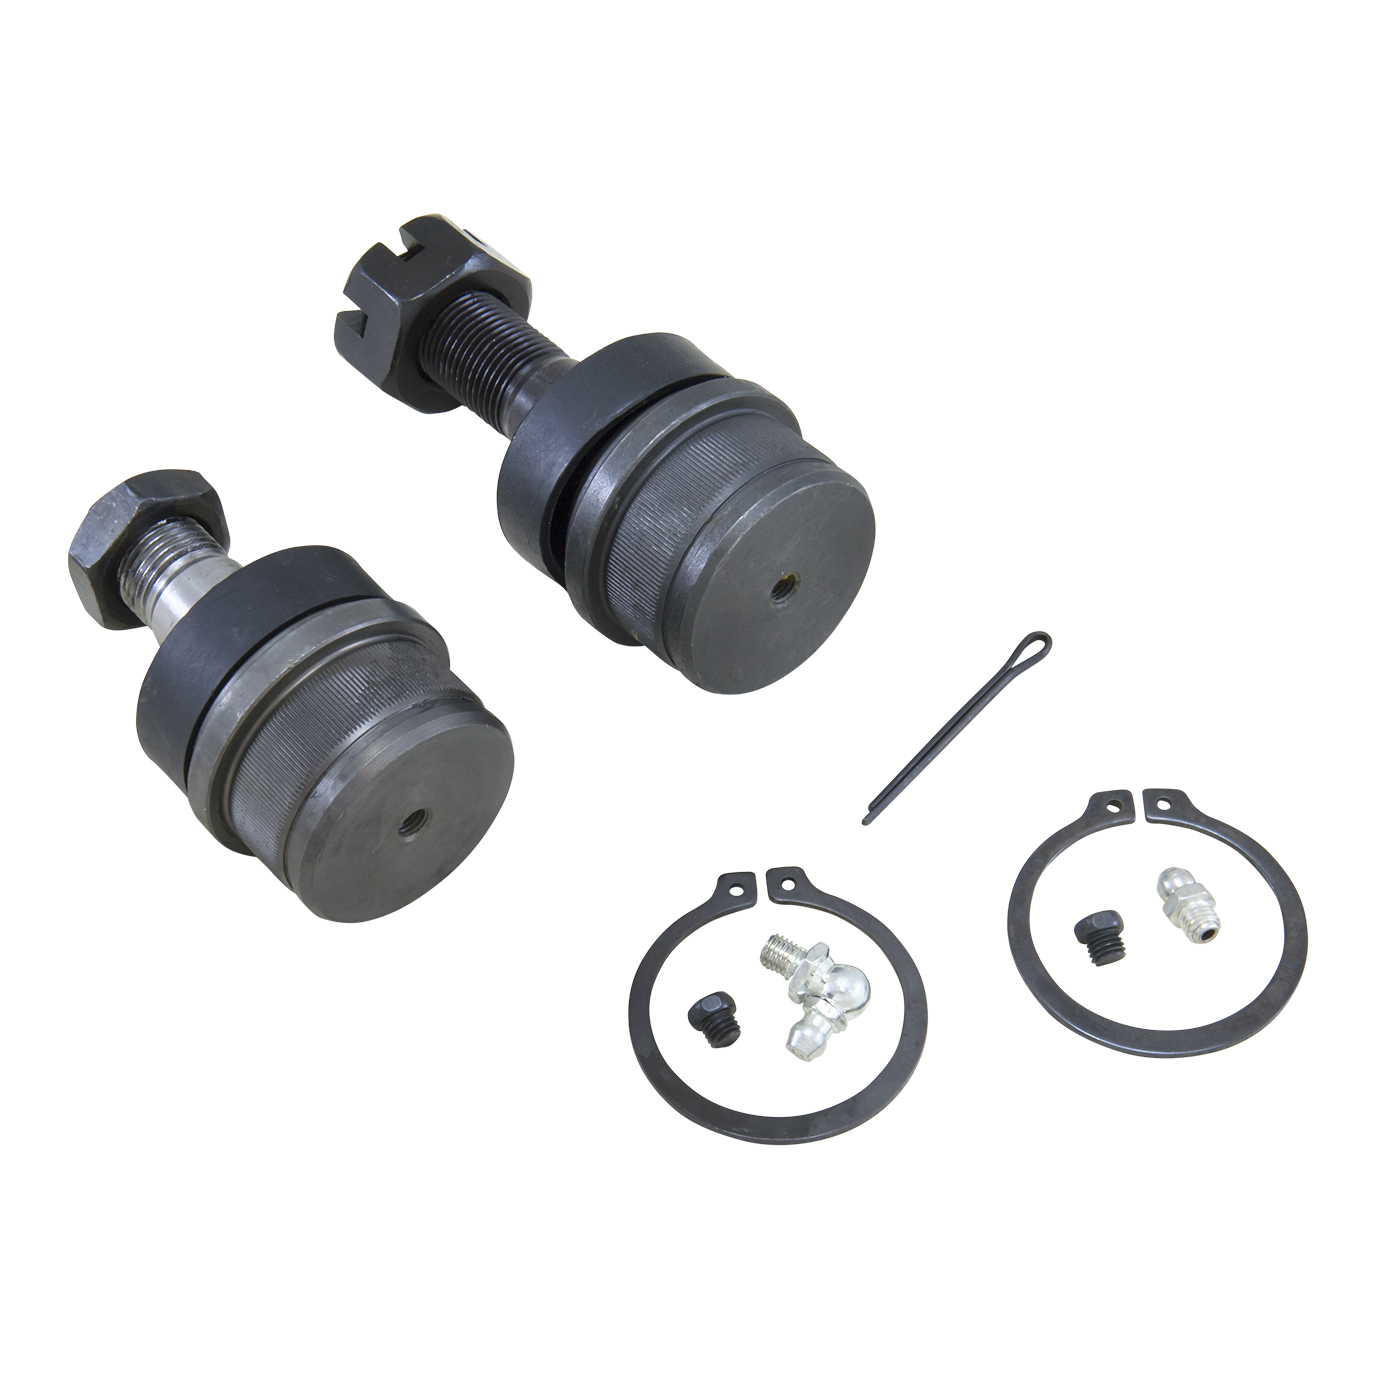 YSPBJ-009 - Ball joint kit for '80-'96 Bronco & F150, one side